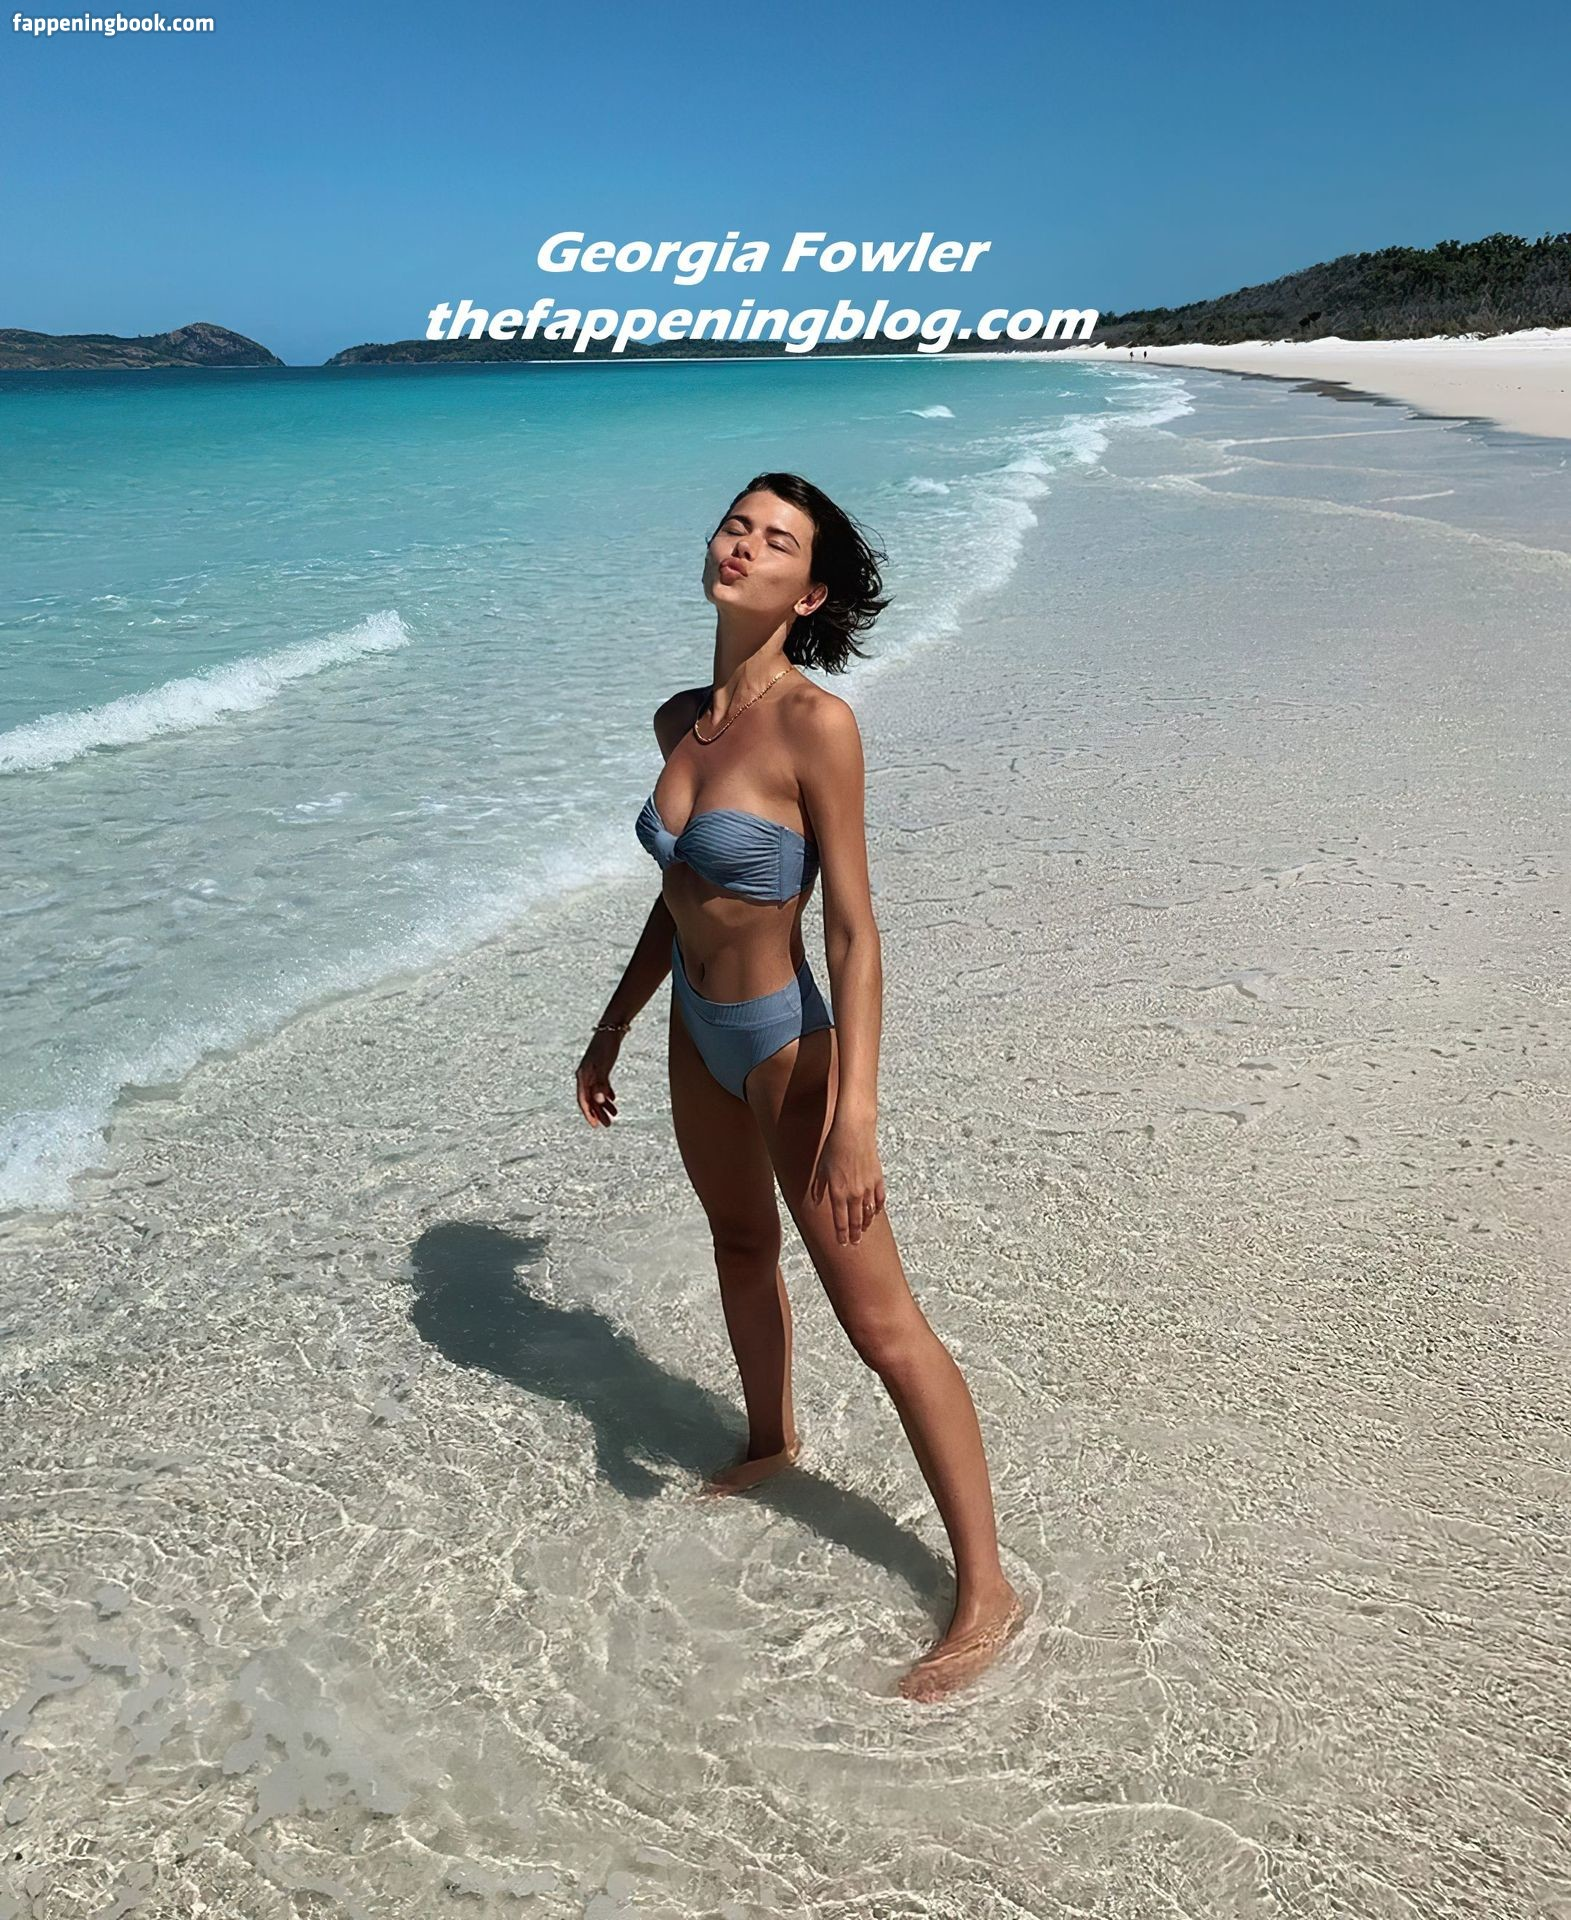 Georgia Fowler Nude, Sexy, The Fappening, Uncensored